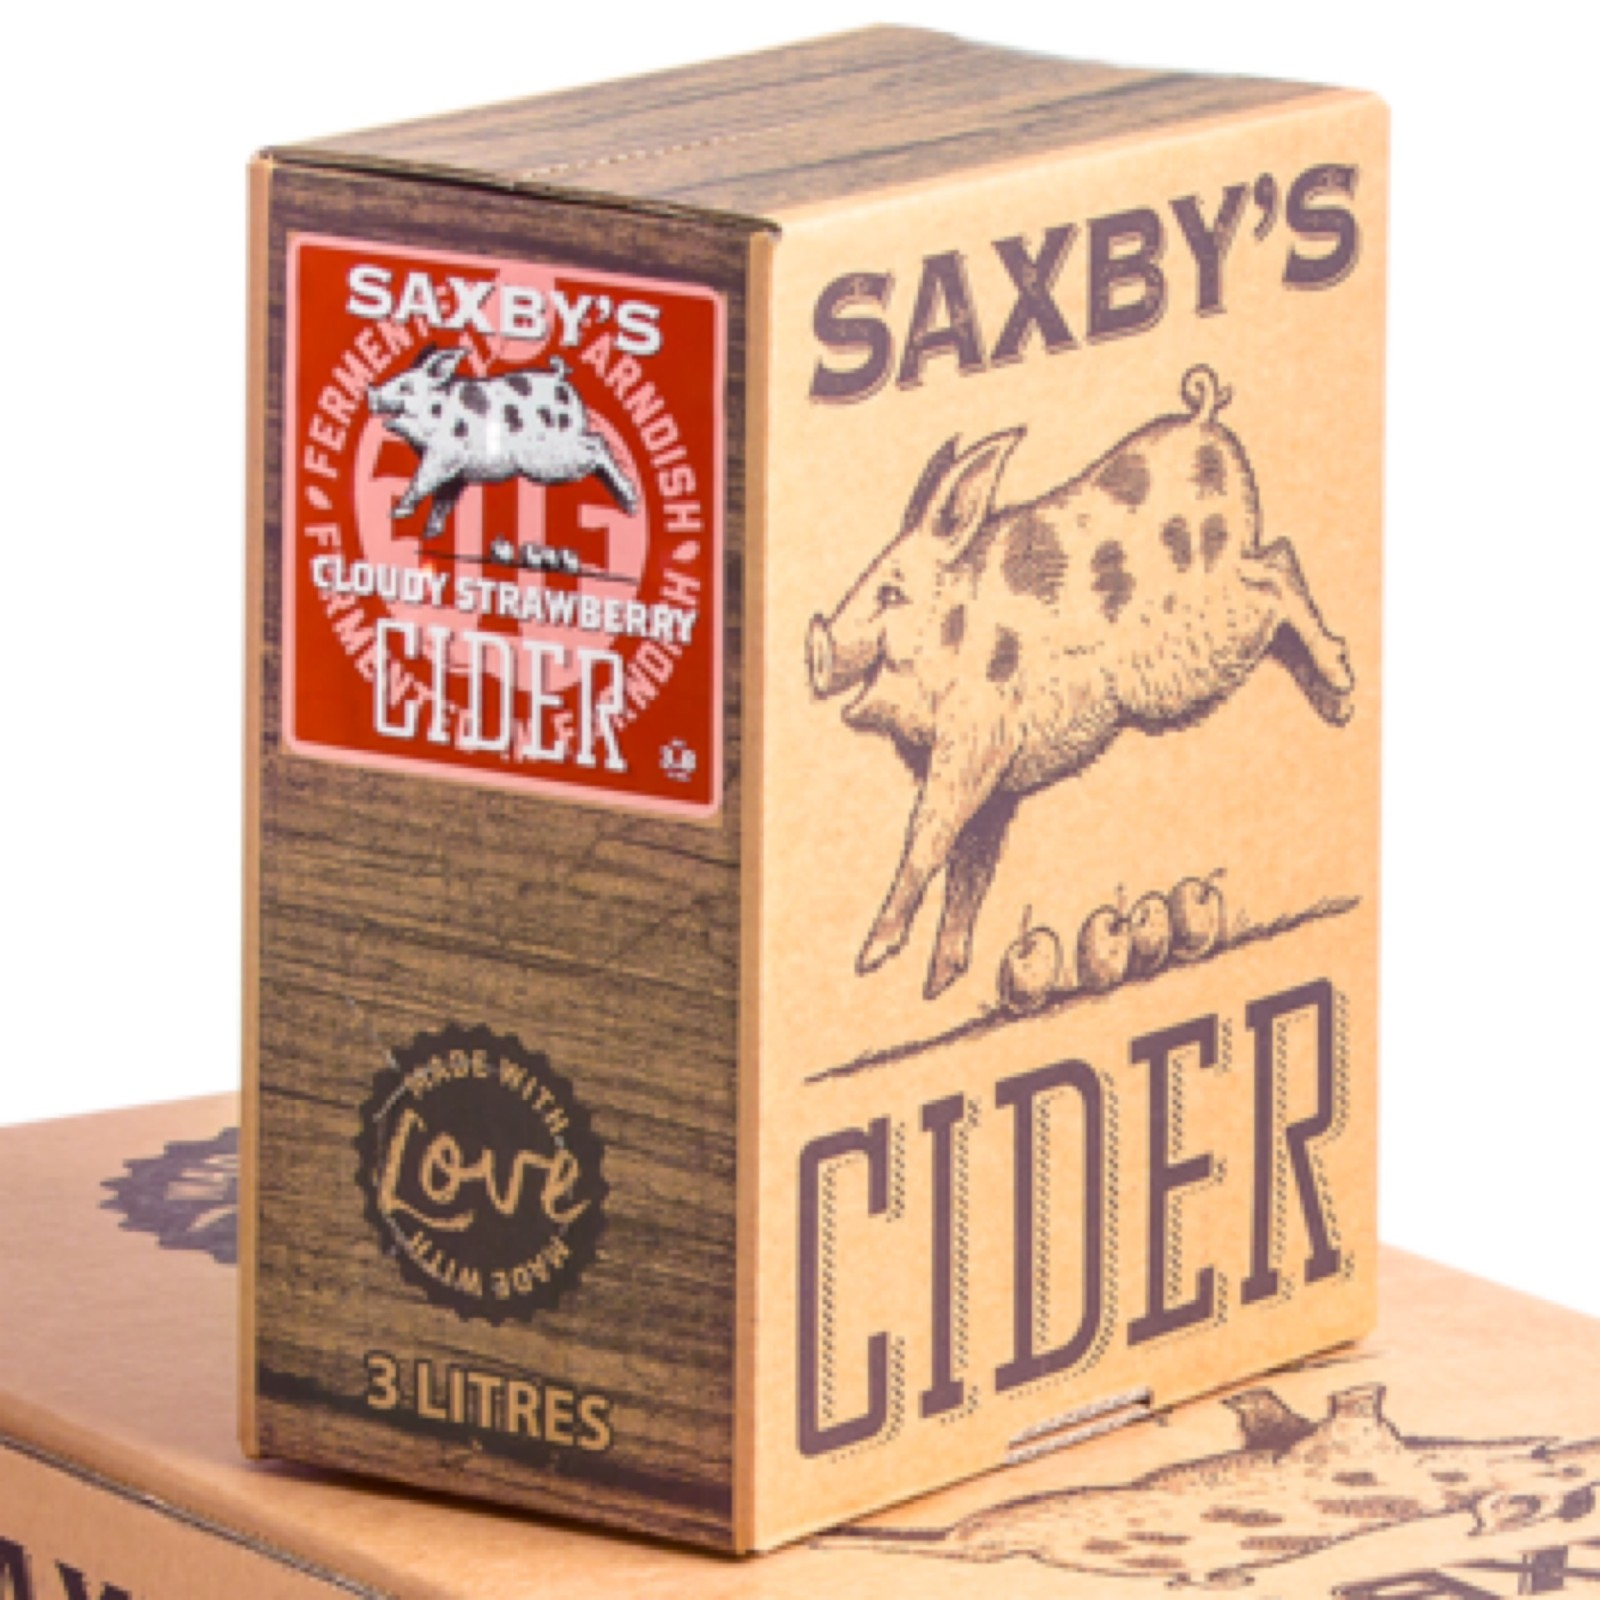 Saxby's Strawberry Cider 3.8% 500ml & 3litre Bag In The Box